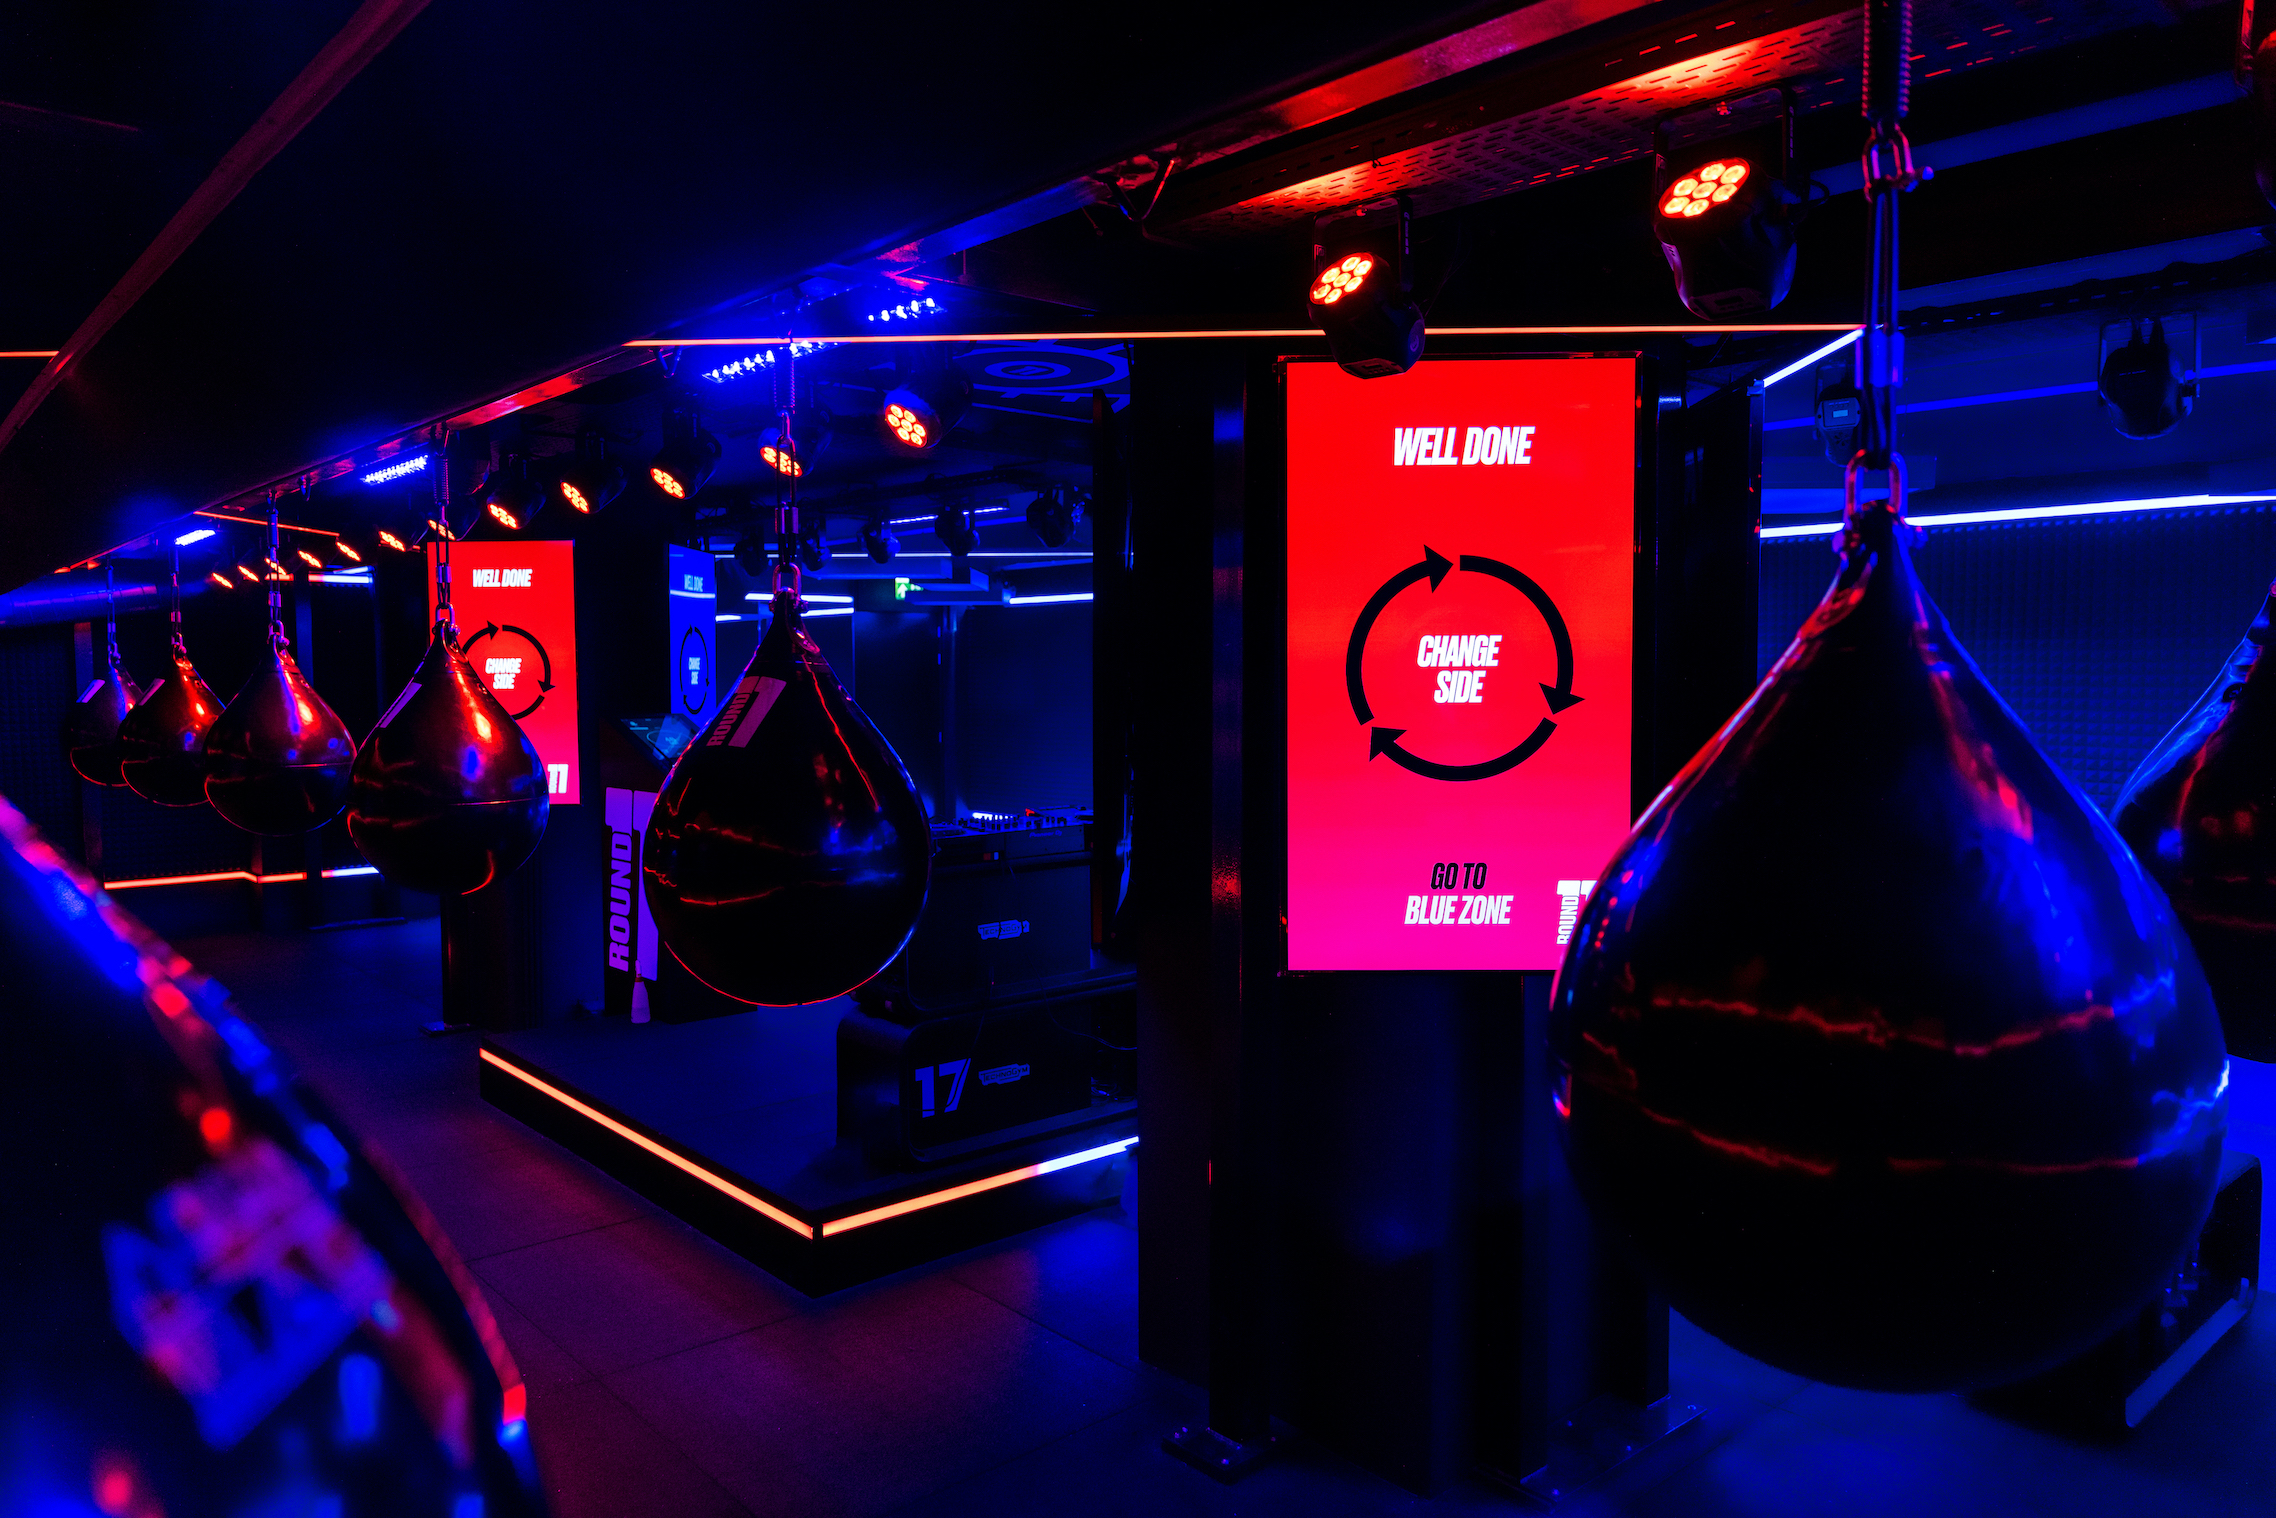 ROUND11 TEAMS UP WITH FUNXTION TO PROVIDE MINDFUL VISUALS TO ITS IN-CLUB EXPERIENCE